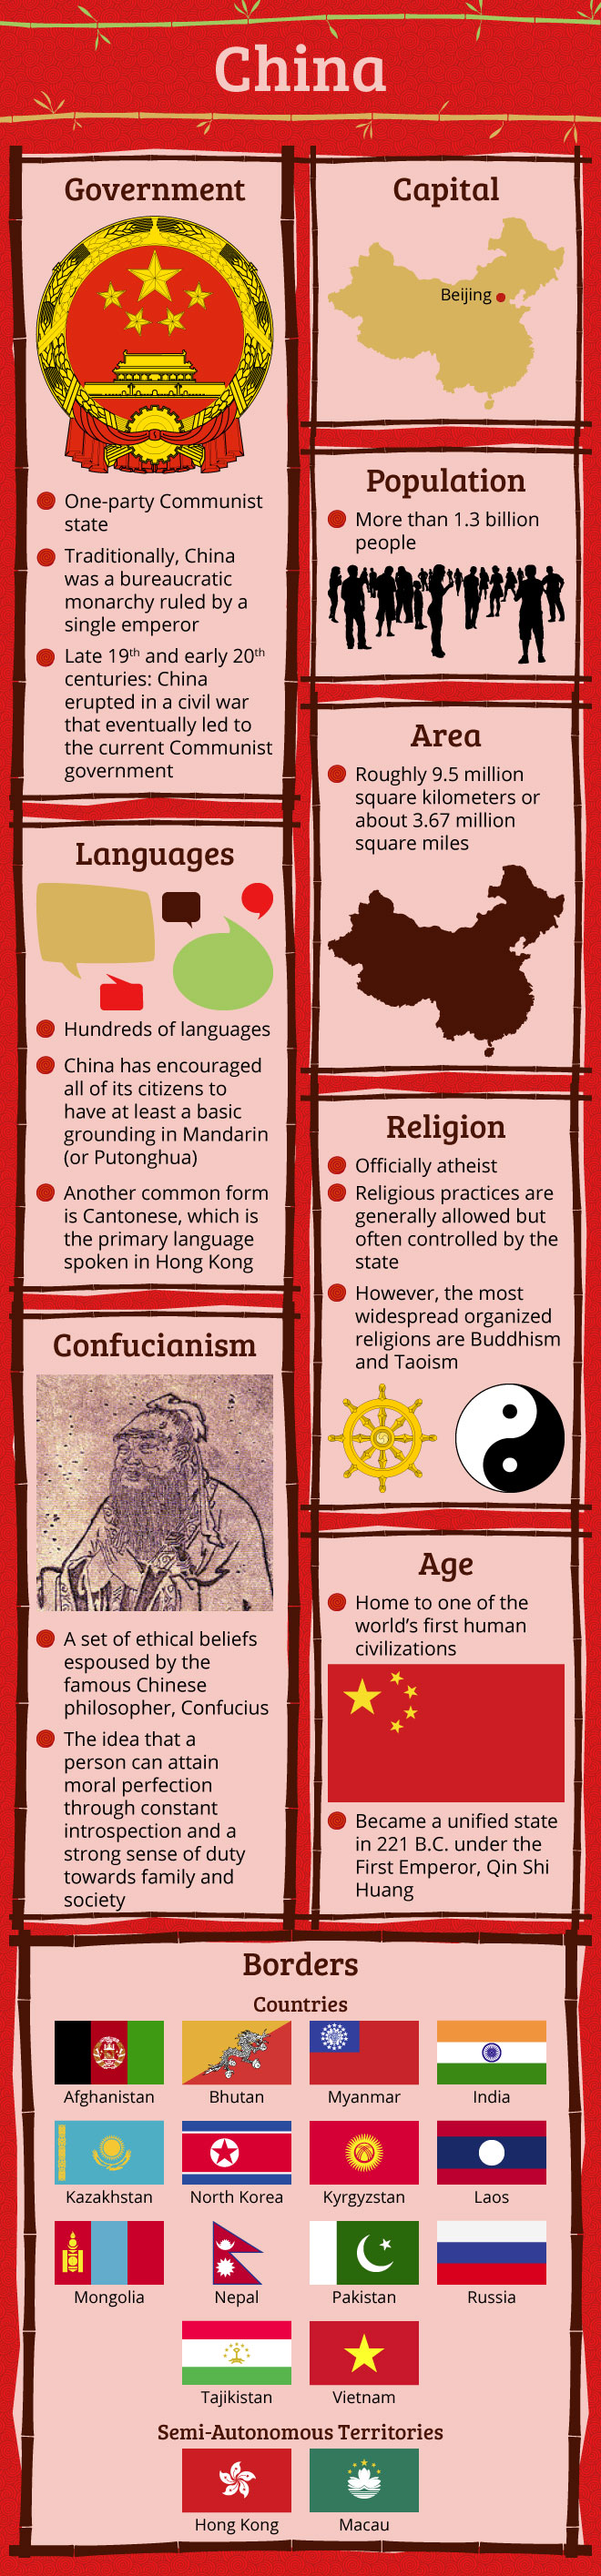 china-fast-facts-infographic